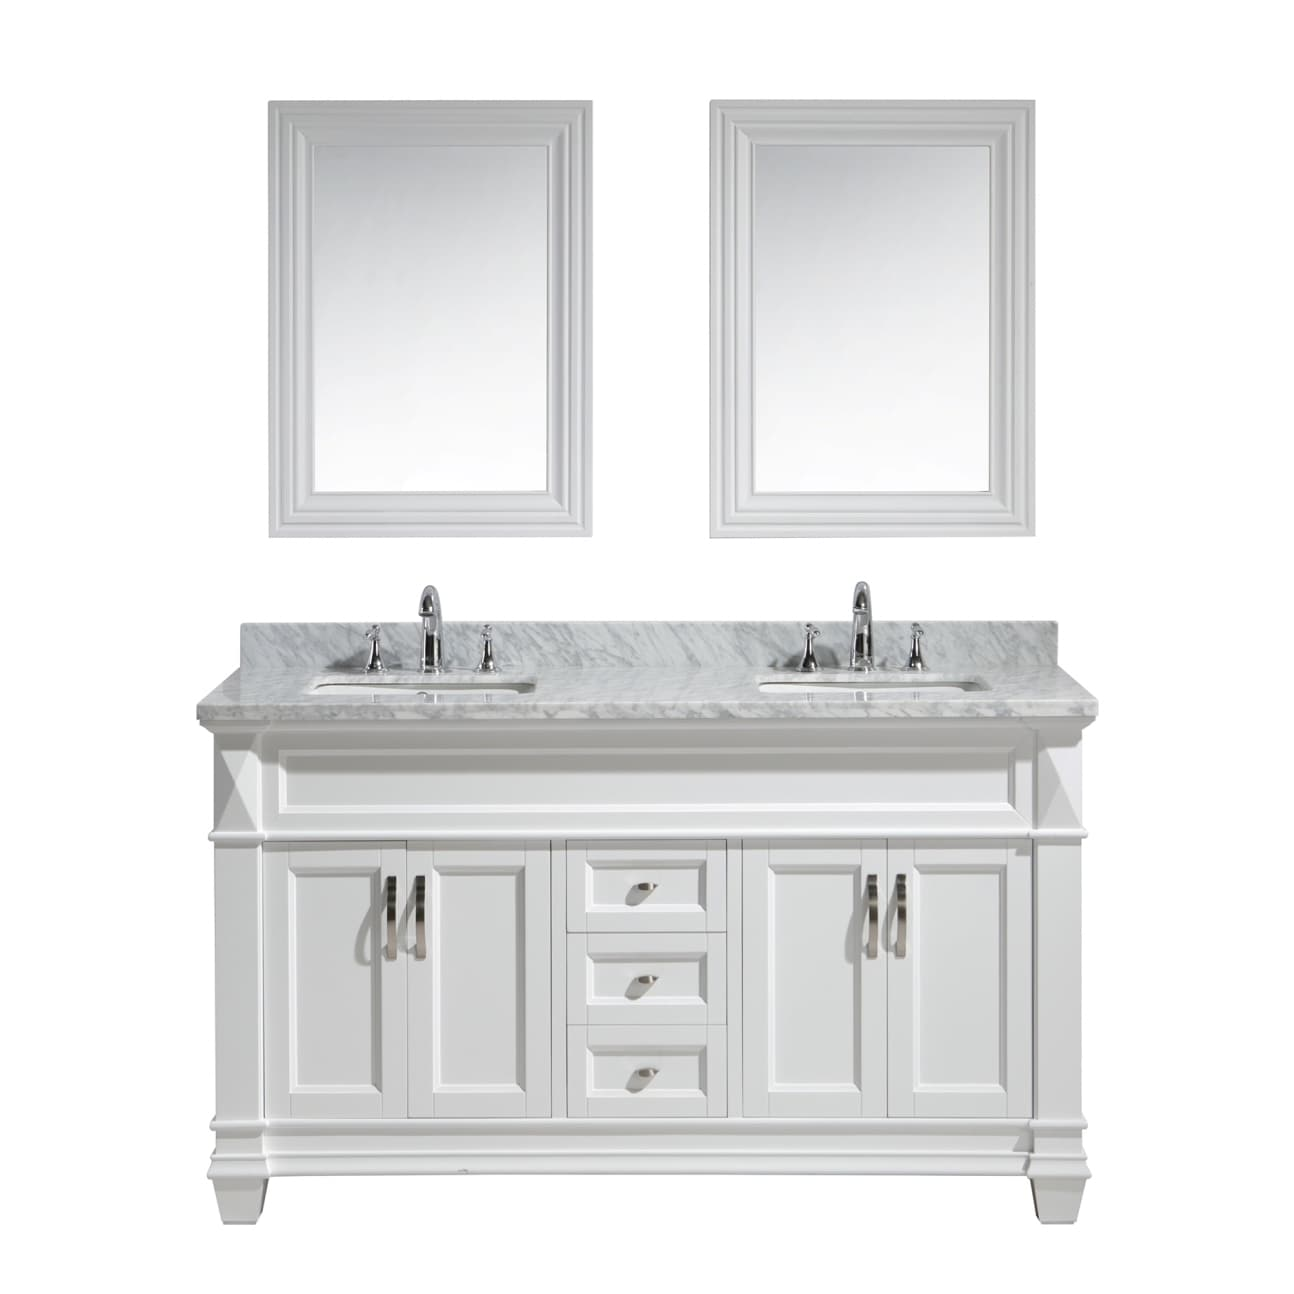 Design Element Hudson 60 Inch Double Sink Vanity Set In White With Carrara Marble Countertop Free Shipping Today 10521496